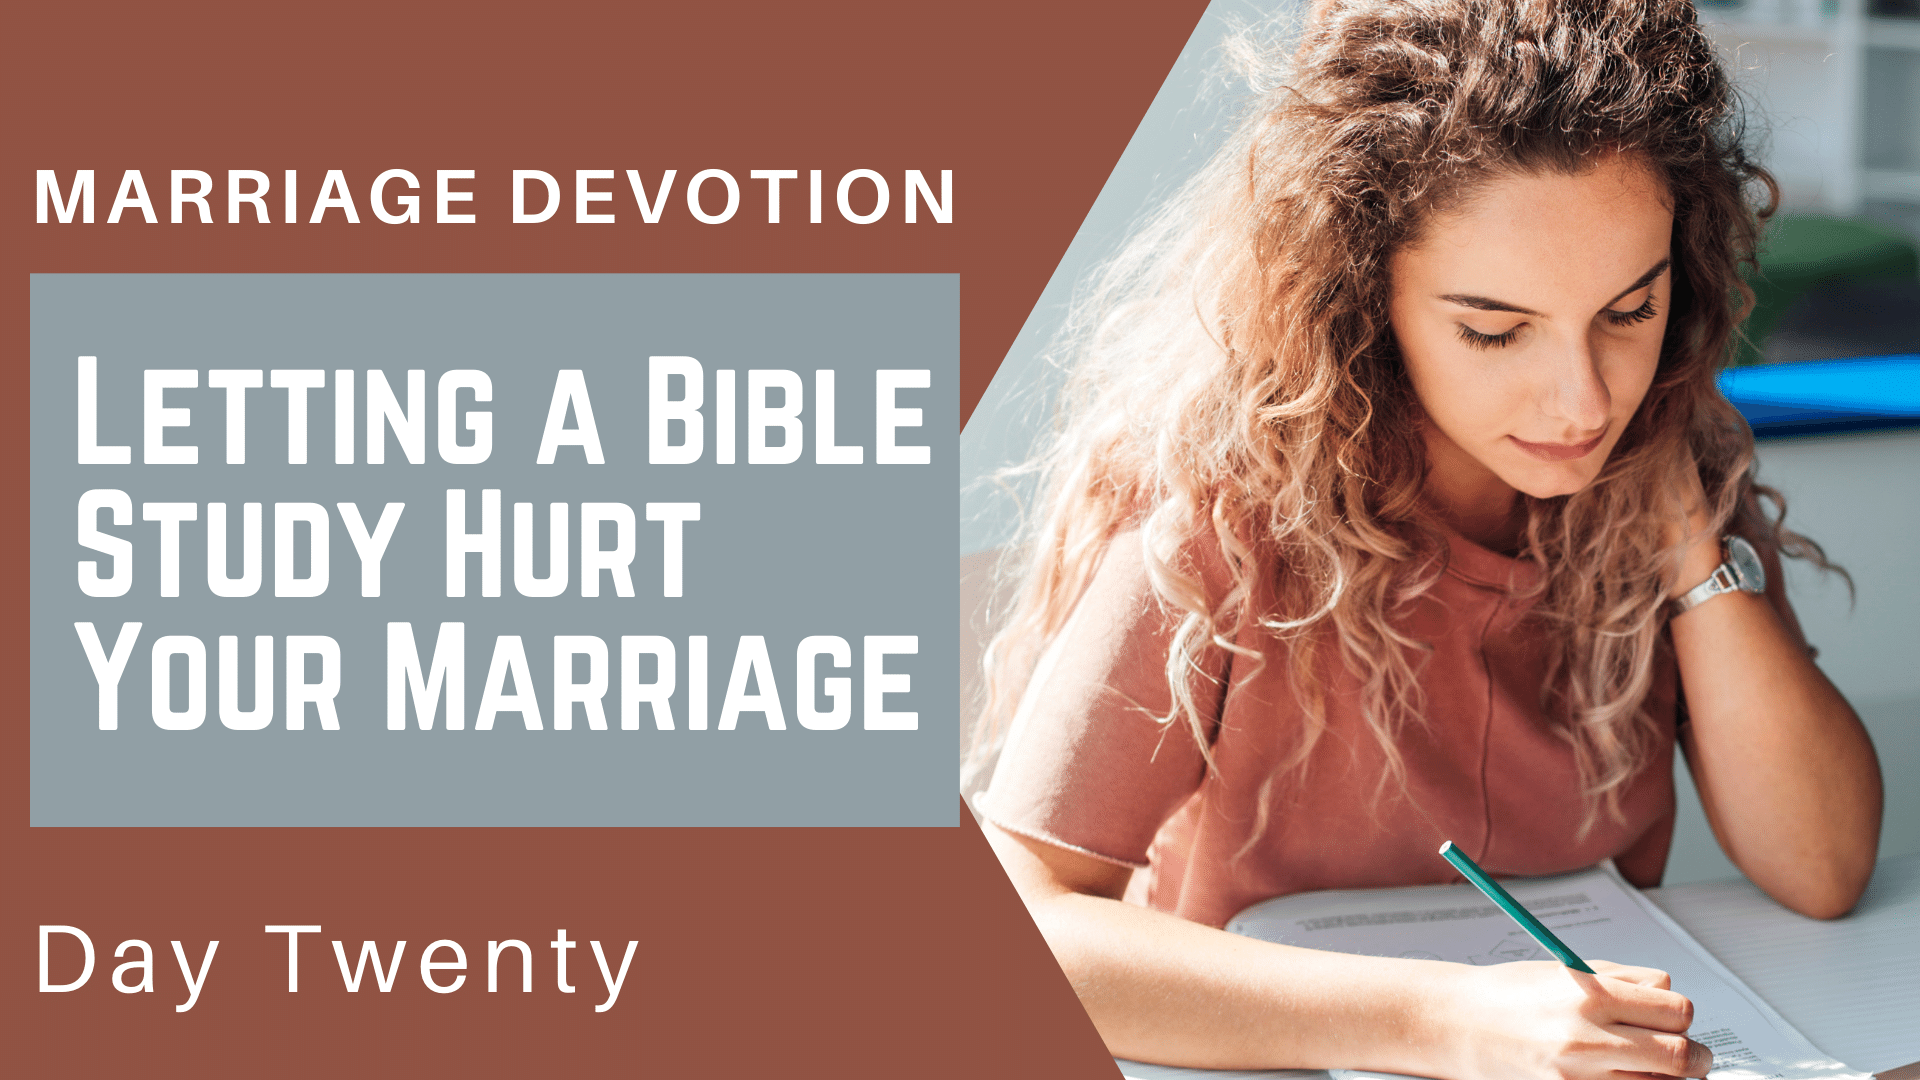 Marriage Devotion Day 20 – Don't Let Your Bible Study Hurt Your Marriage